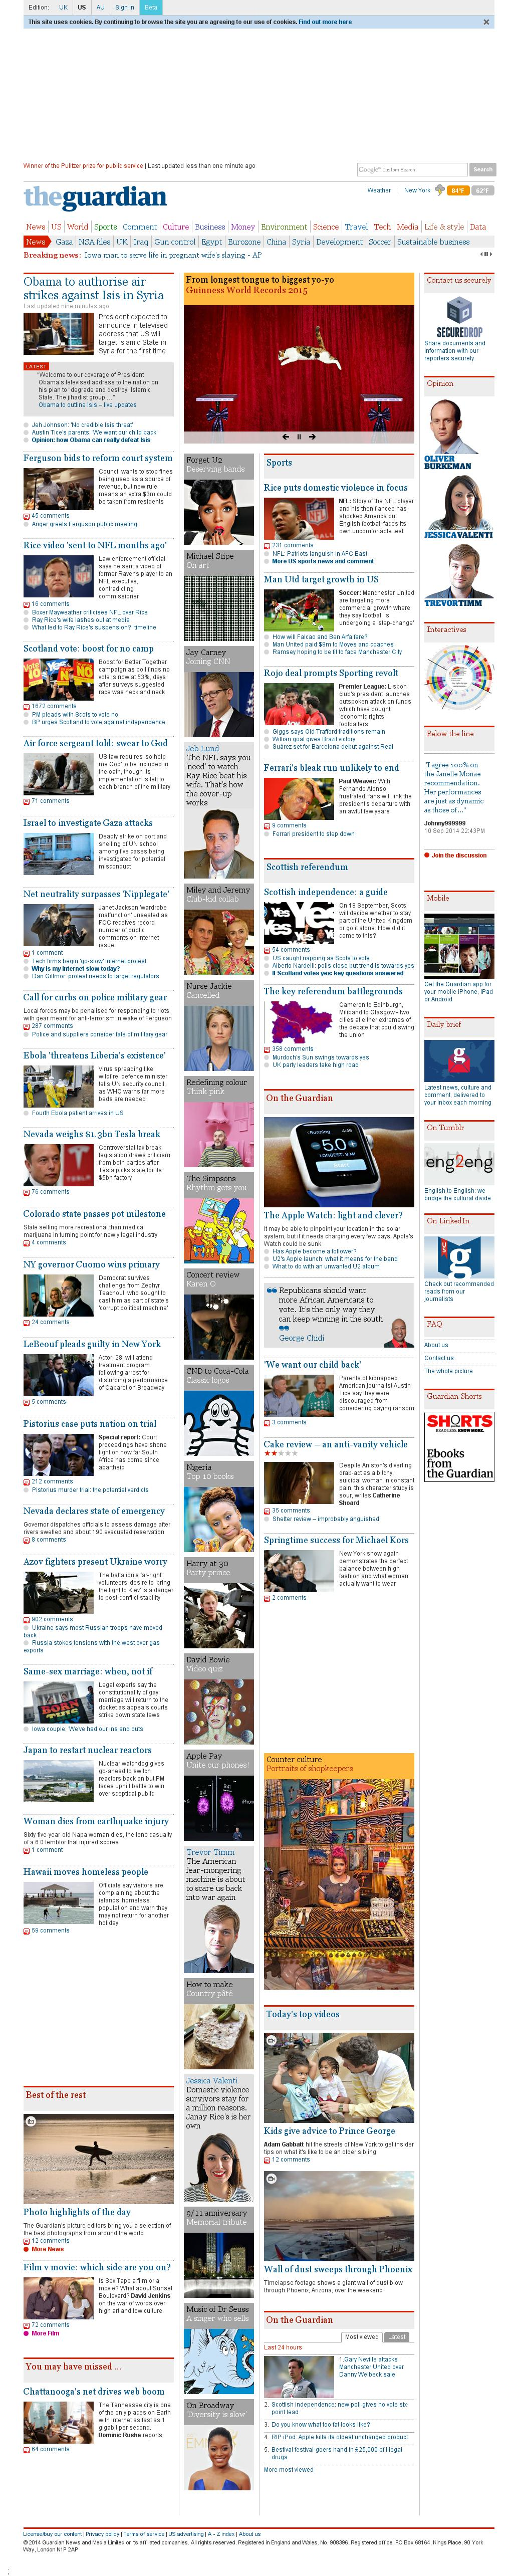 The Guardian at Wednesday Sept. 10, 2014, 11:13 p.m. UTC